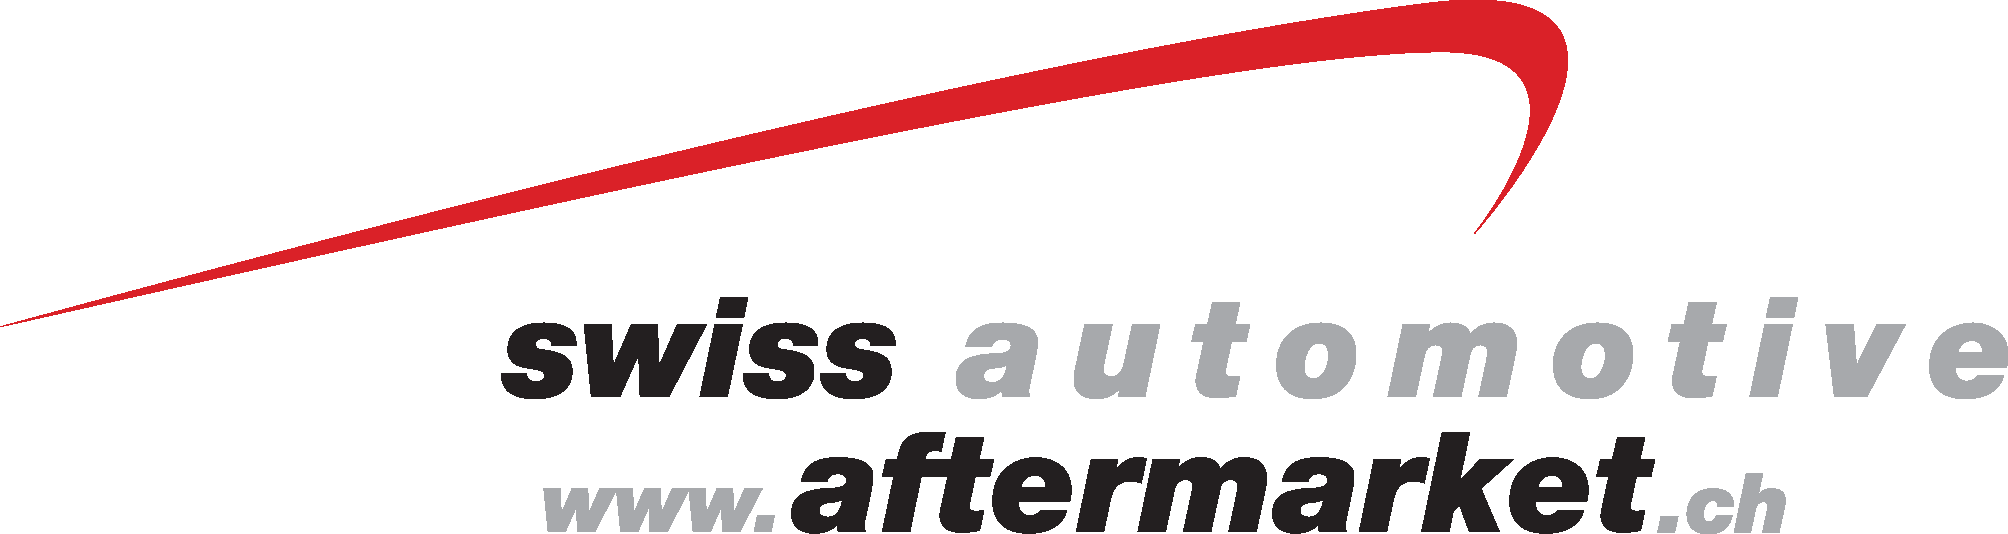 logo SWISS AUTOMOTIVE AFTERMARKET